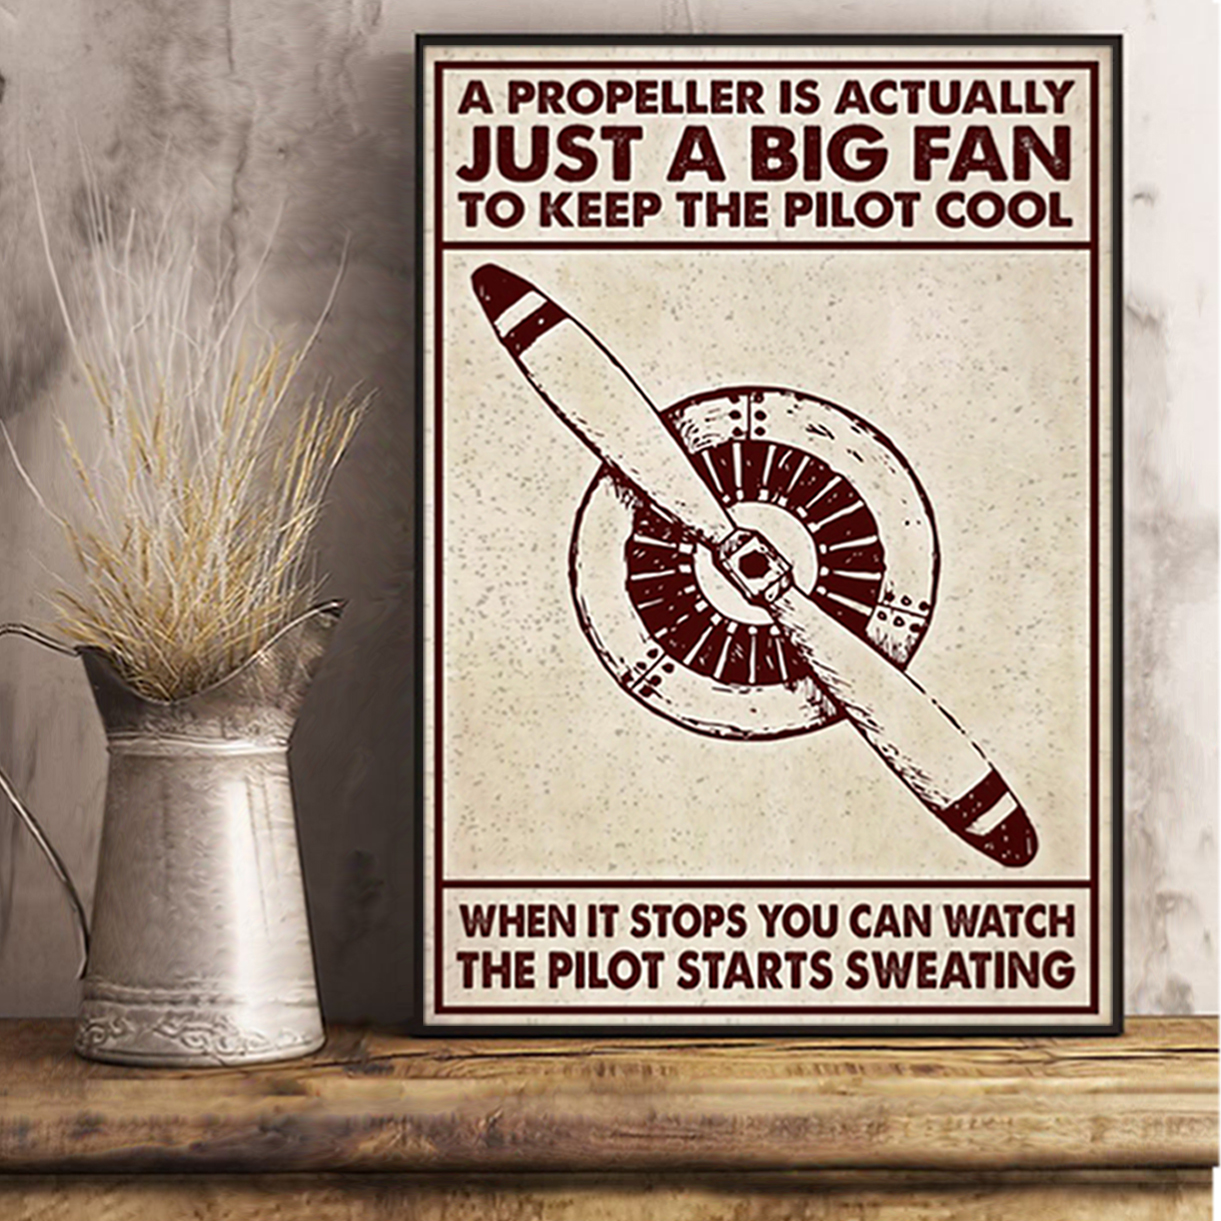 Aircraft a propeller is actually just a big fan poster A2